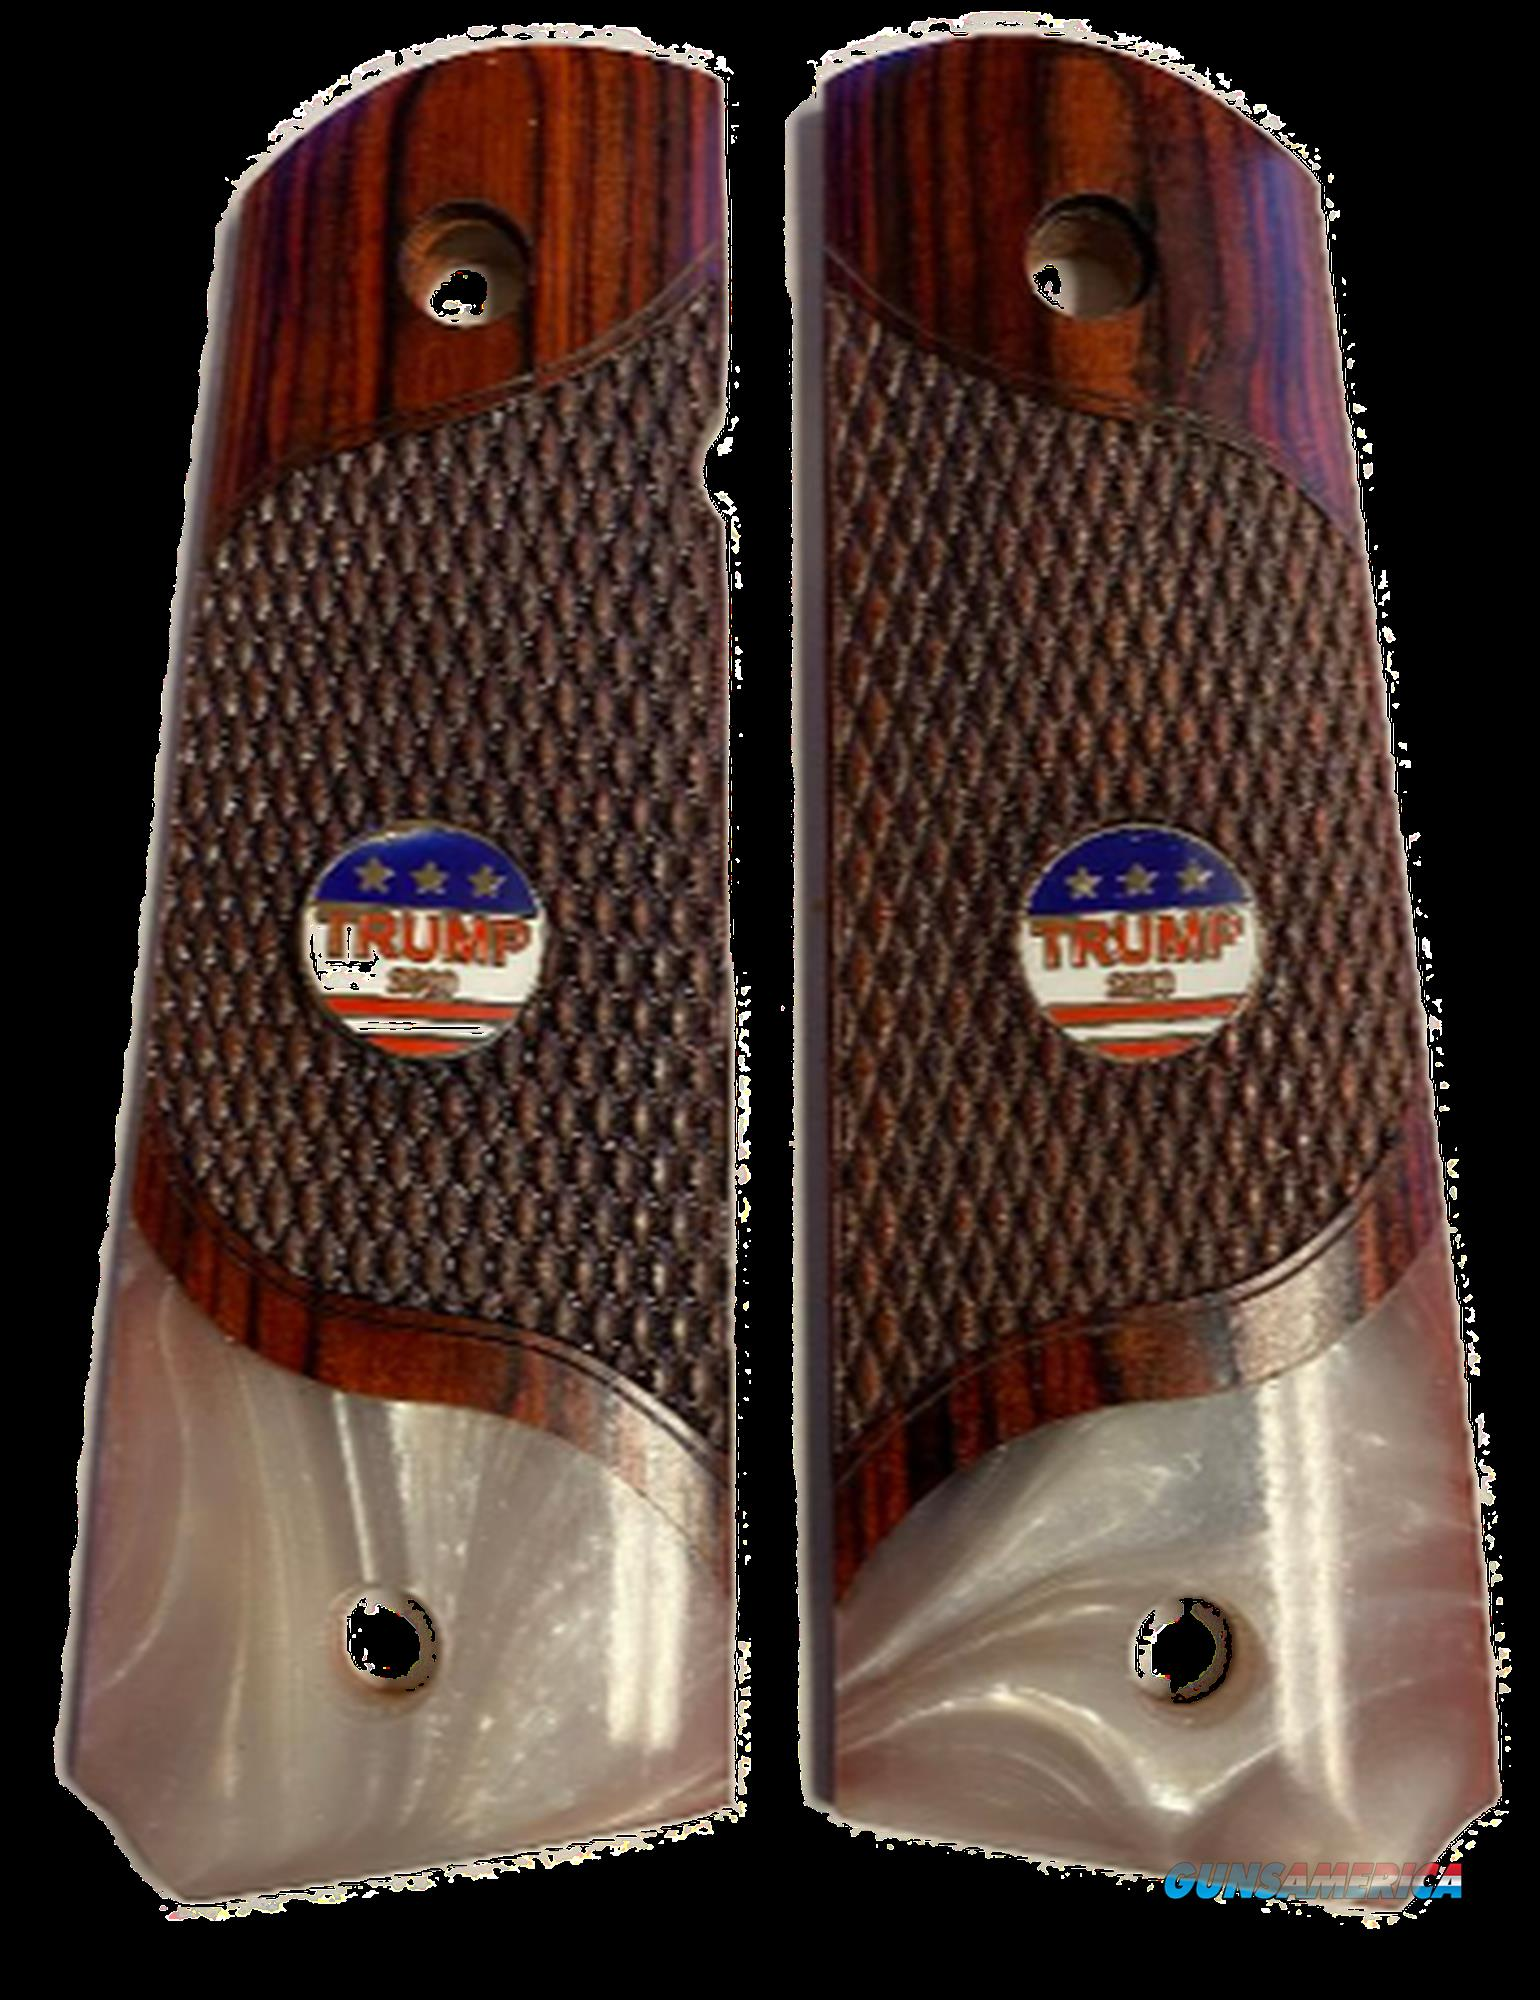 Premium 1911 Full Size Checkered Rosewood Grips Pearl Accent w/TRUMP 2020 Medallions